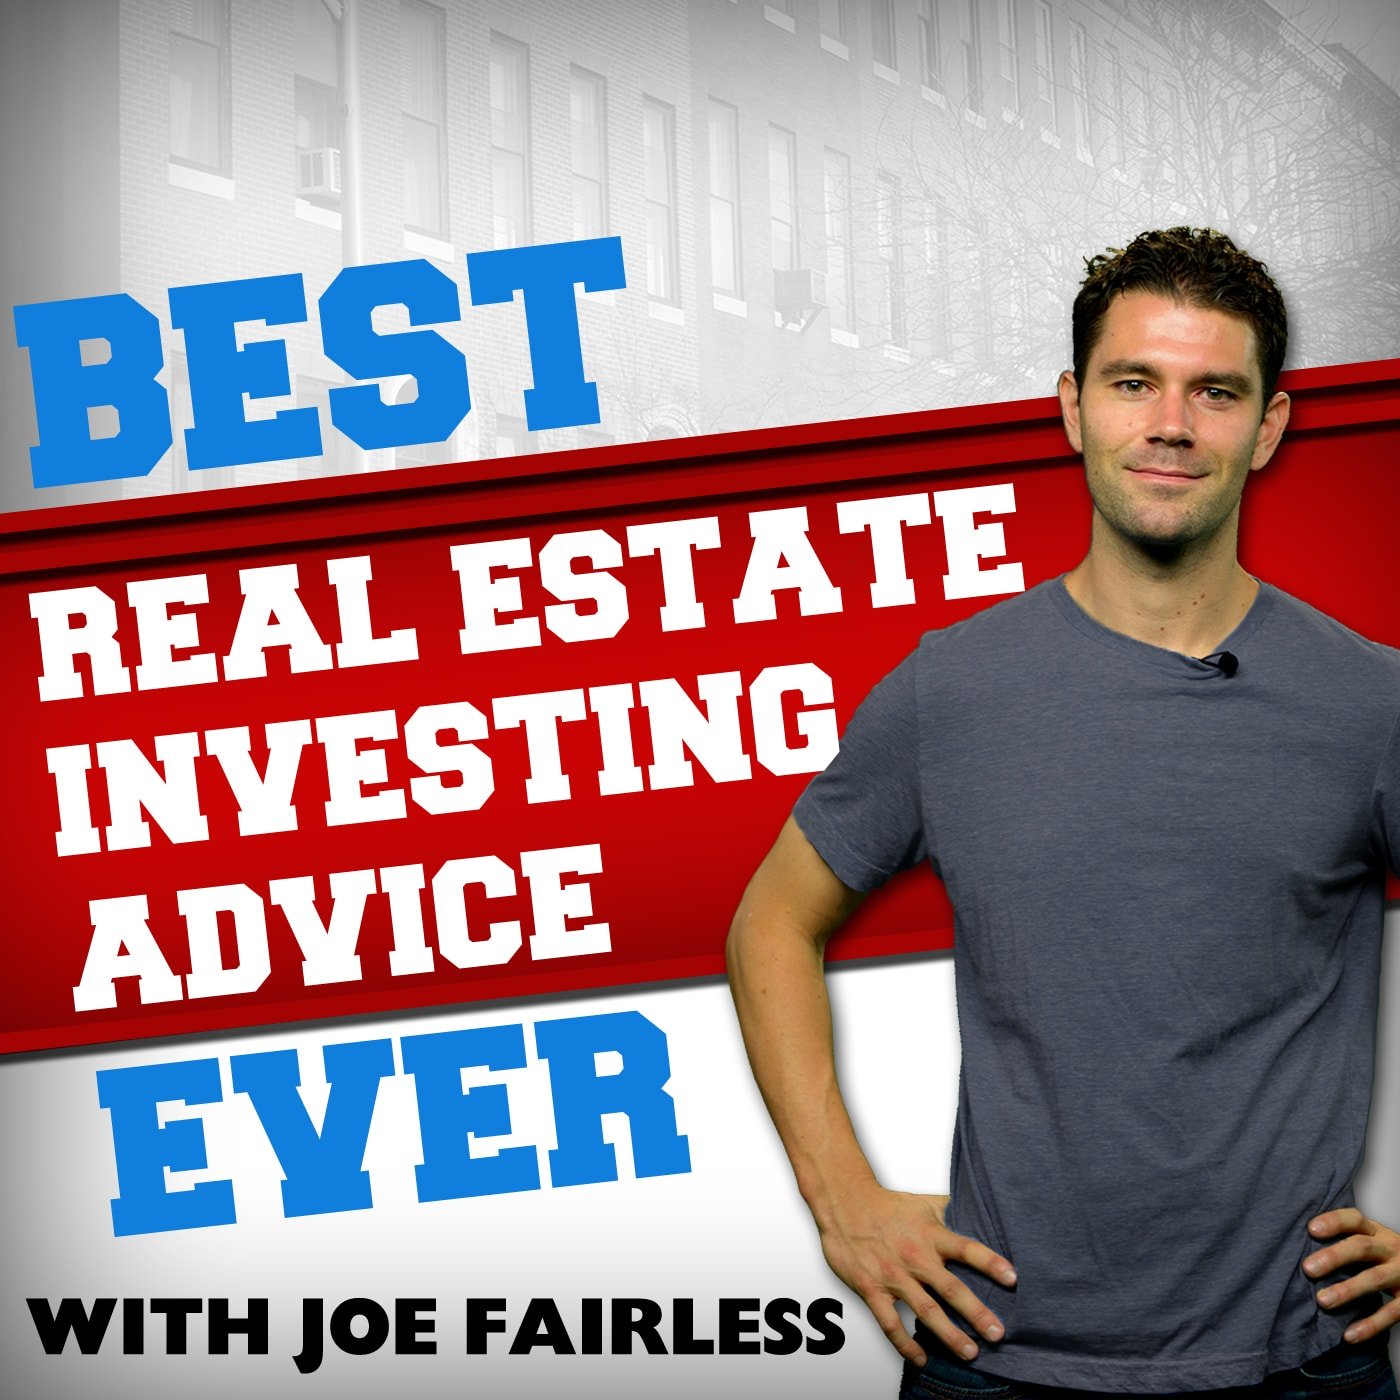 JF627: How this Hard Money Lender Will Approve Your Loan and Wire the Funds FAST!